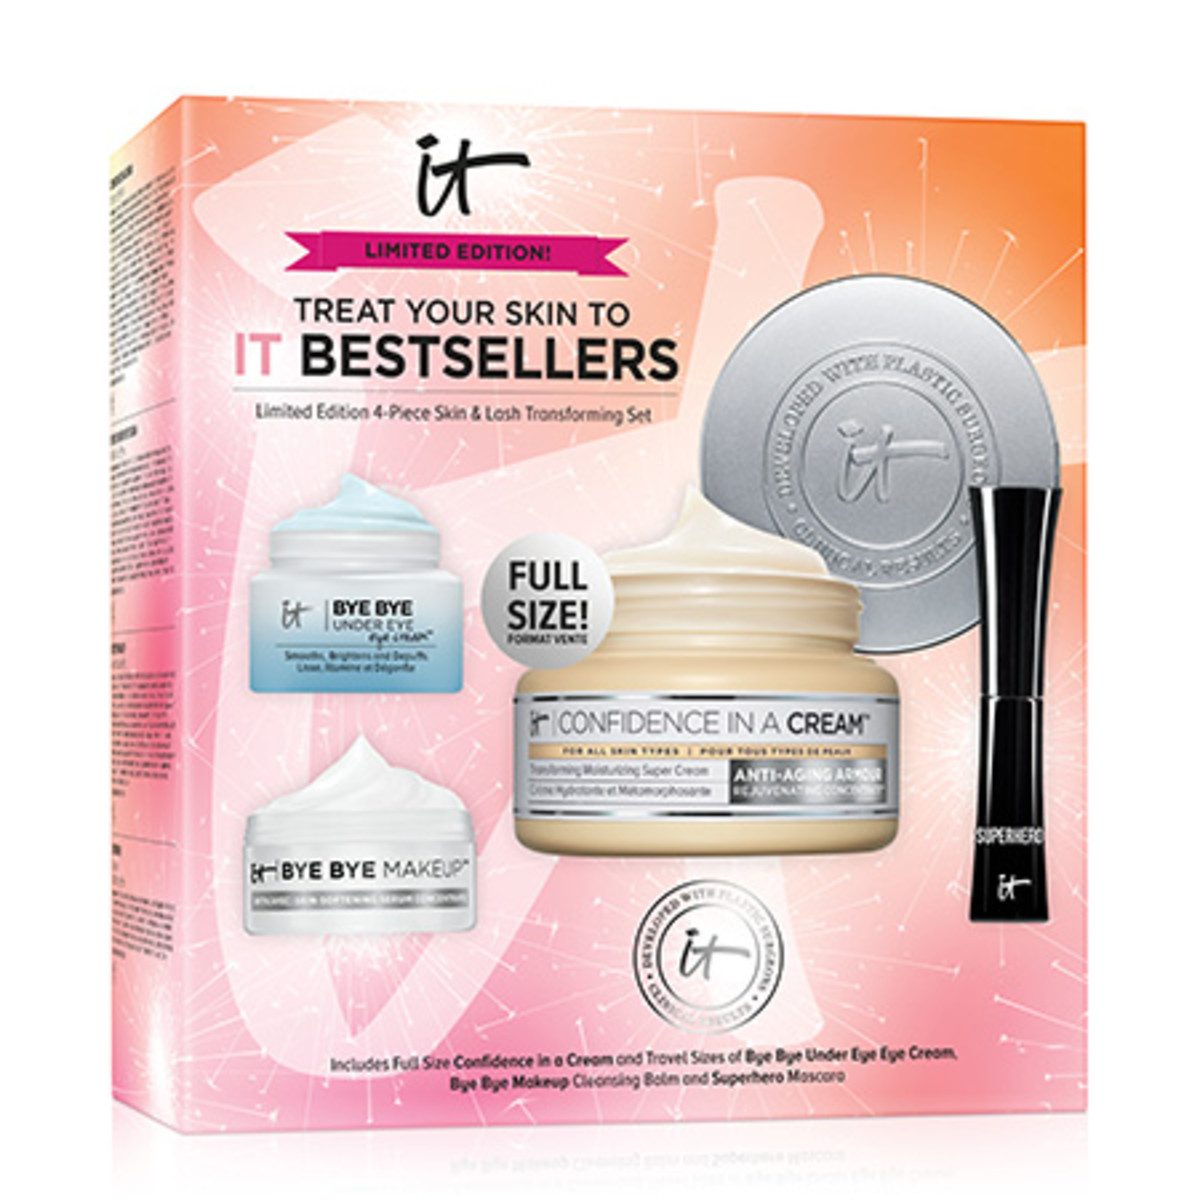 IT Cosmetics Treat Your Skin to IT Best Sellers Box Shot